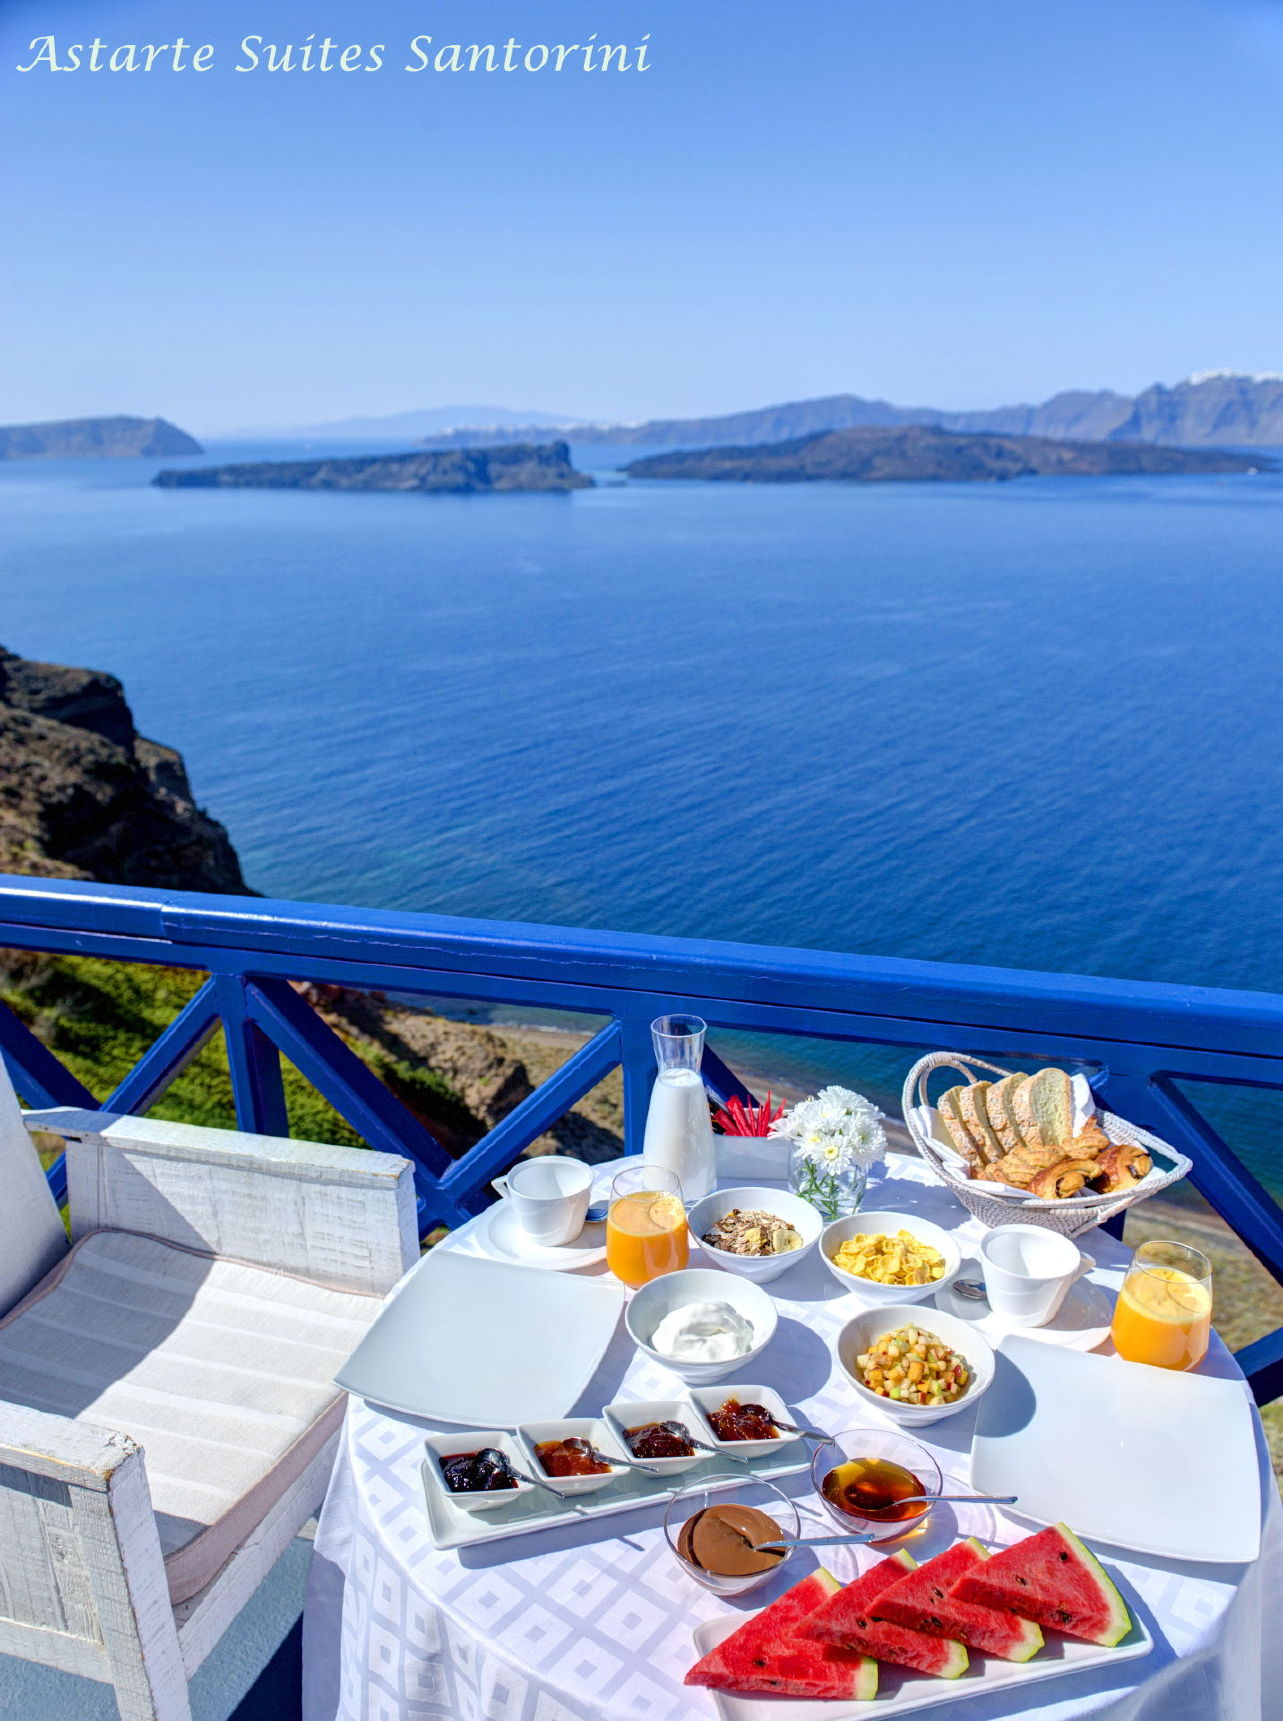 Astarte_Suites_in_Santorini_breakfast